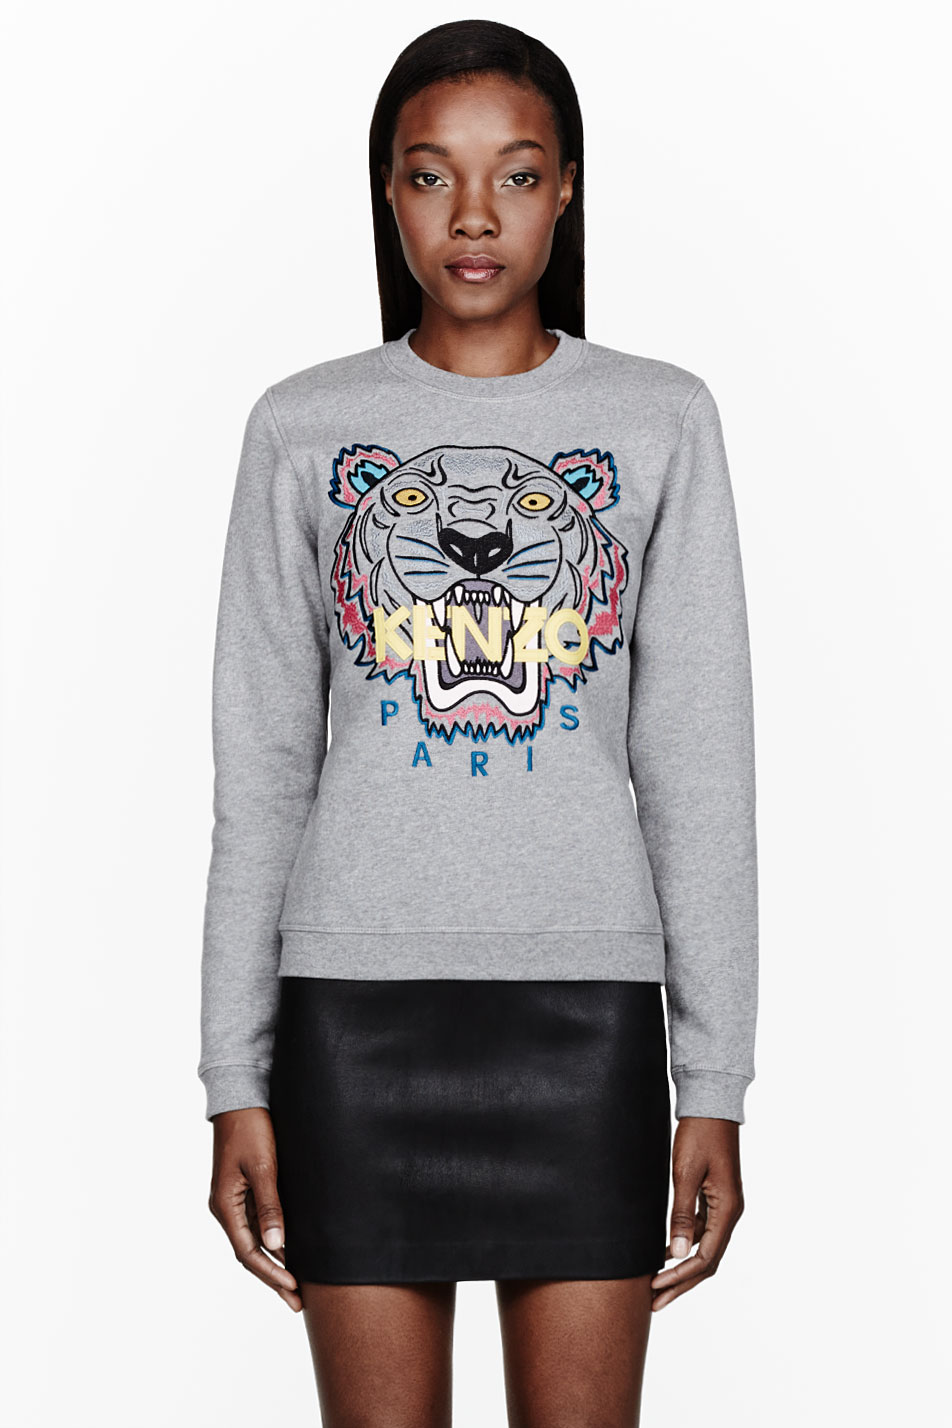 Lyst - KENZO Heather Grey Tiger embroidered Sweatshirt in Gray 382e6464b